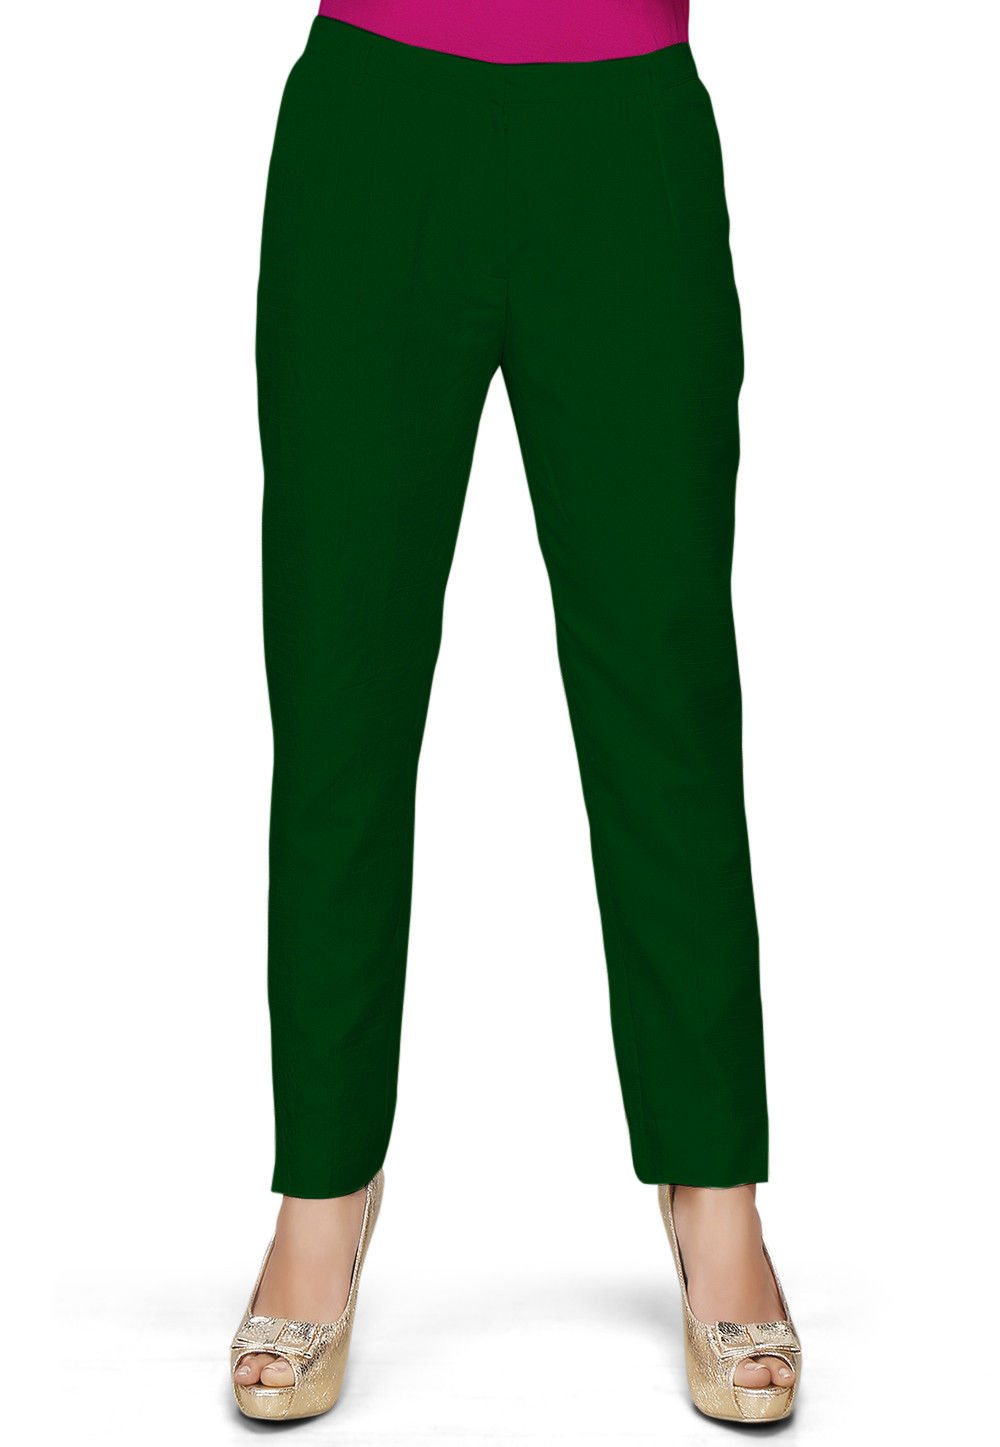 Solid Color Dupion Silk Pant in Dark Green